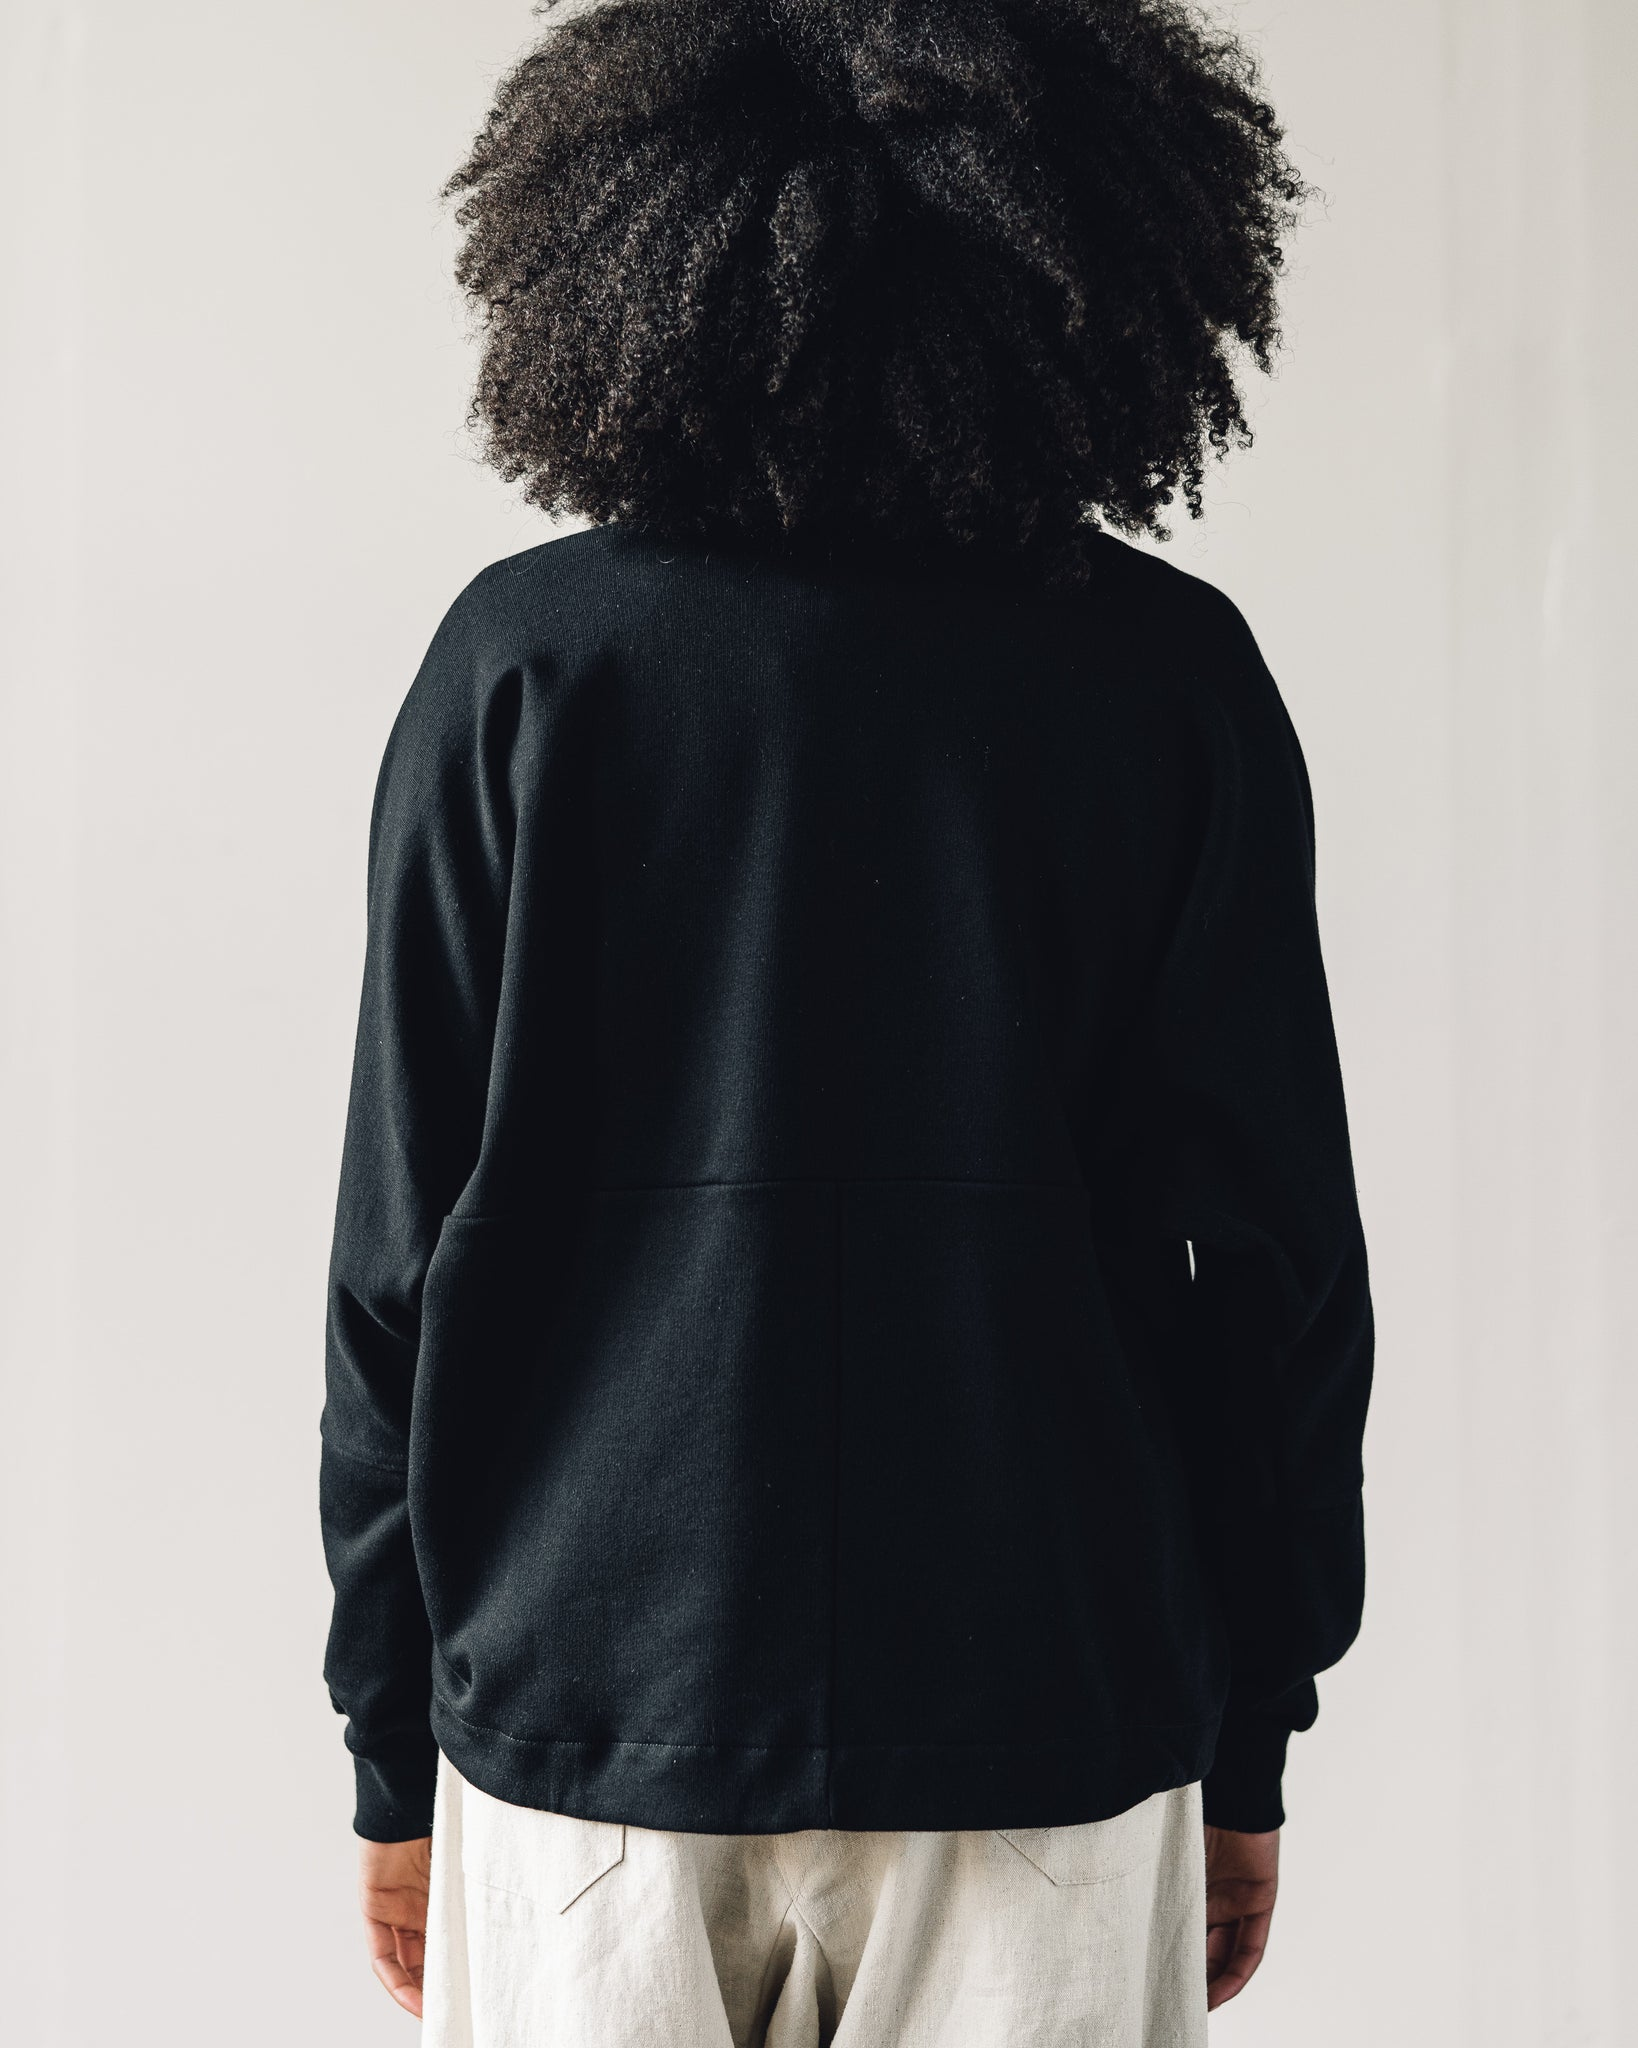 Jan-Jan Van Essche Sweat #46, Black